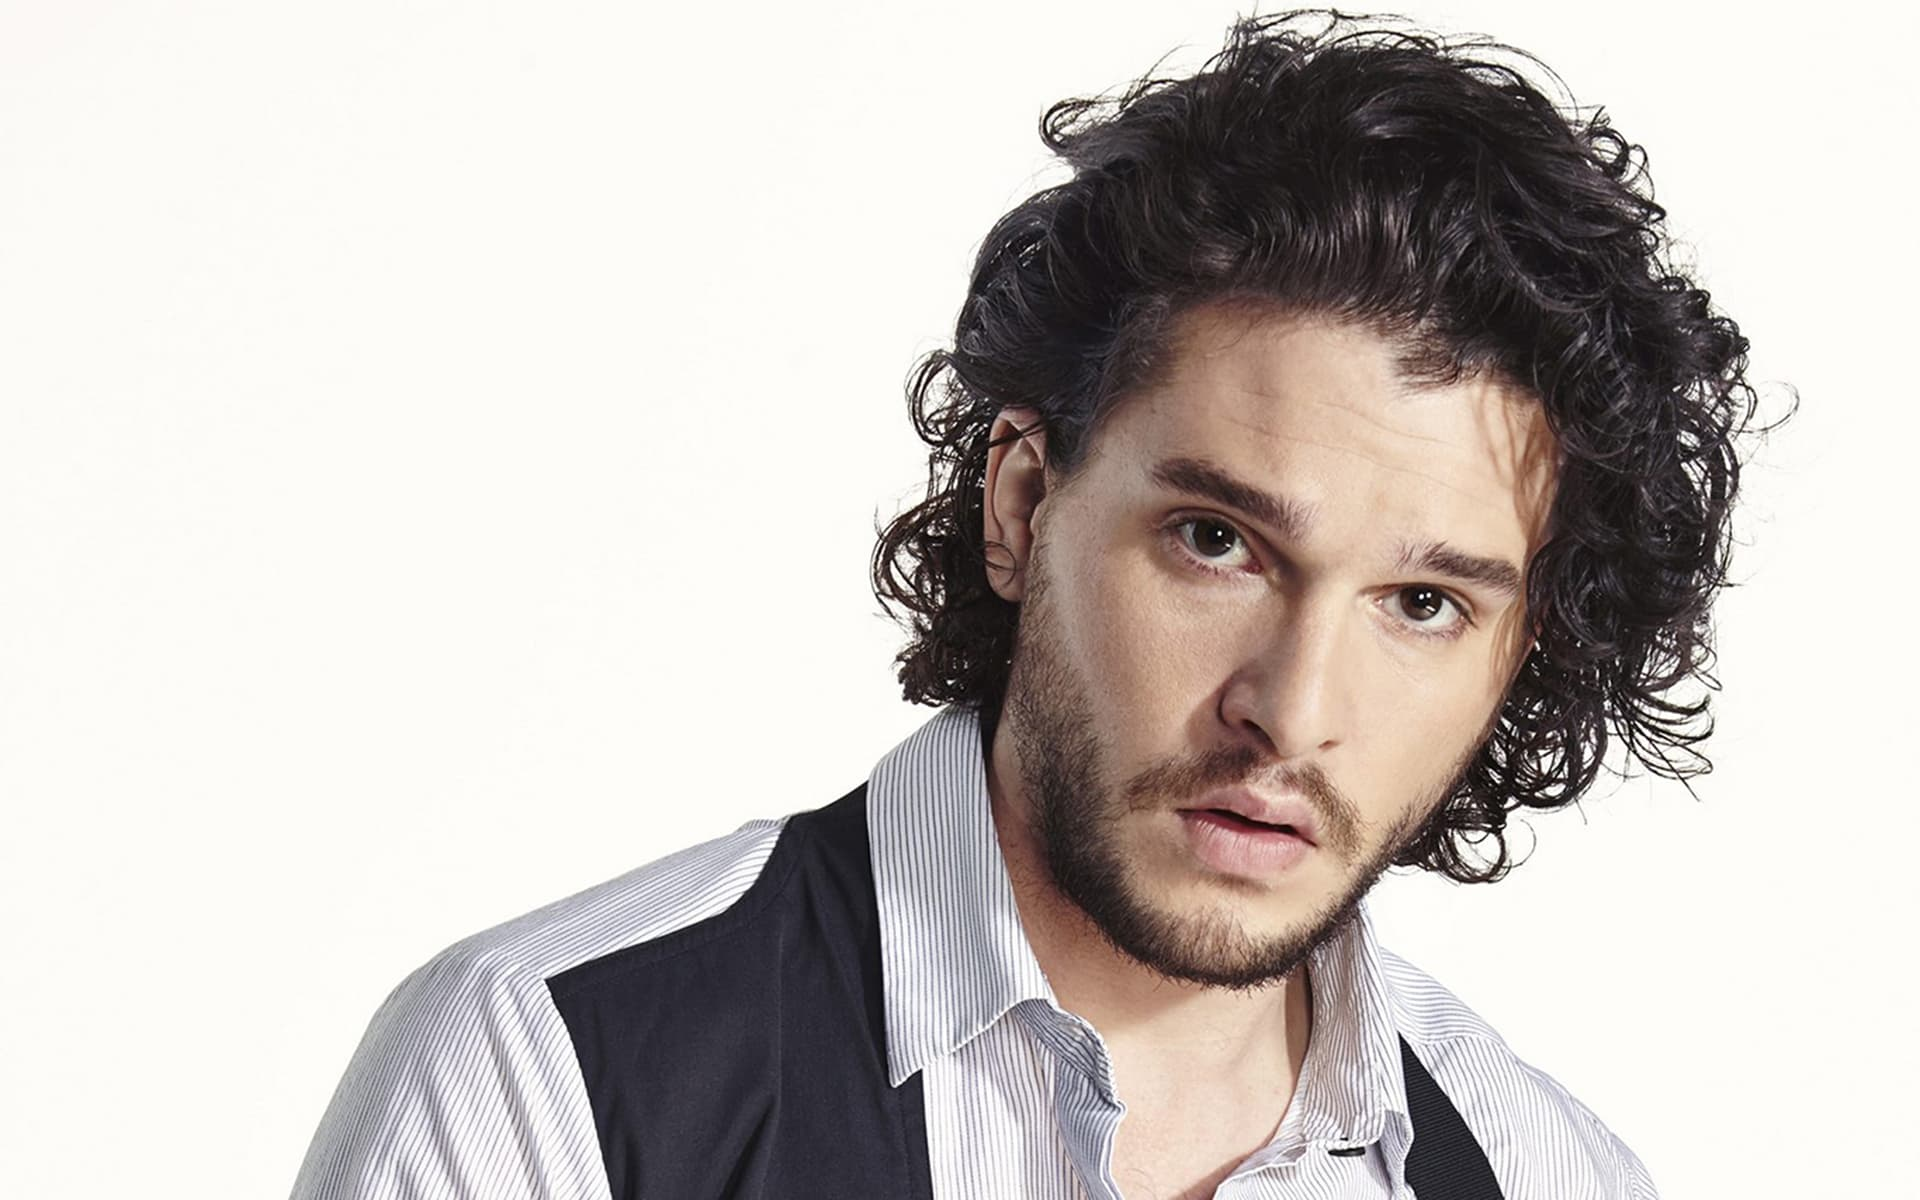 High Quality Car Pictures And Car Wallpapers 20 Kit Harington Wallpapers High Quality Resolution Download